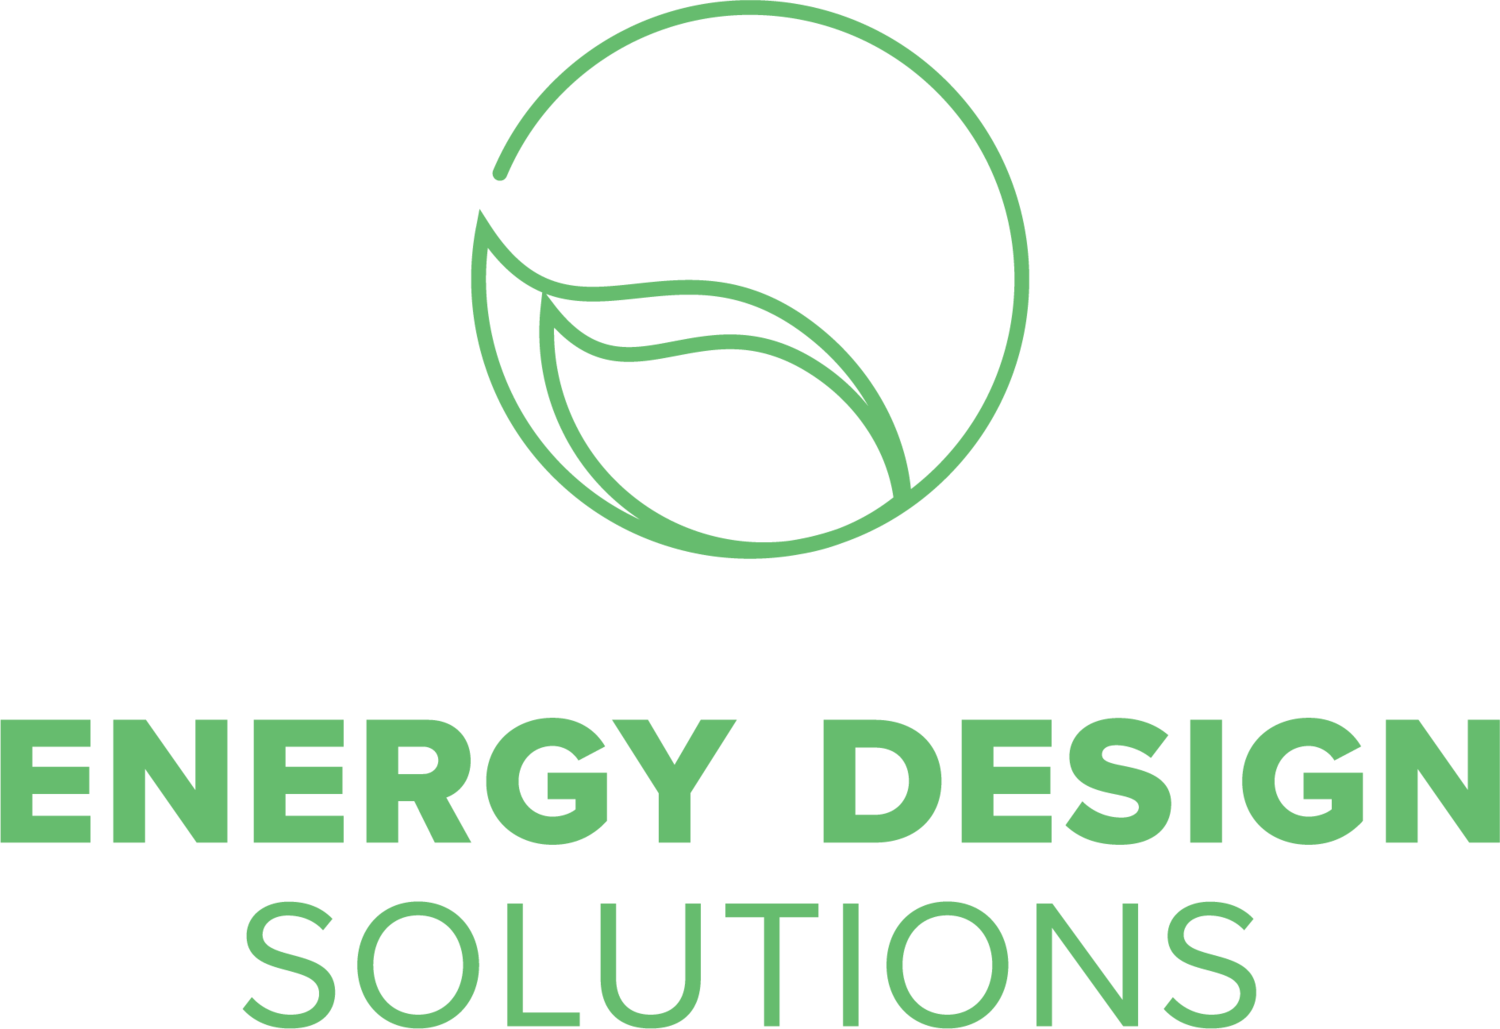 Energy Design Solutions